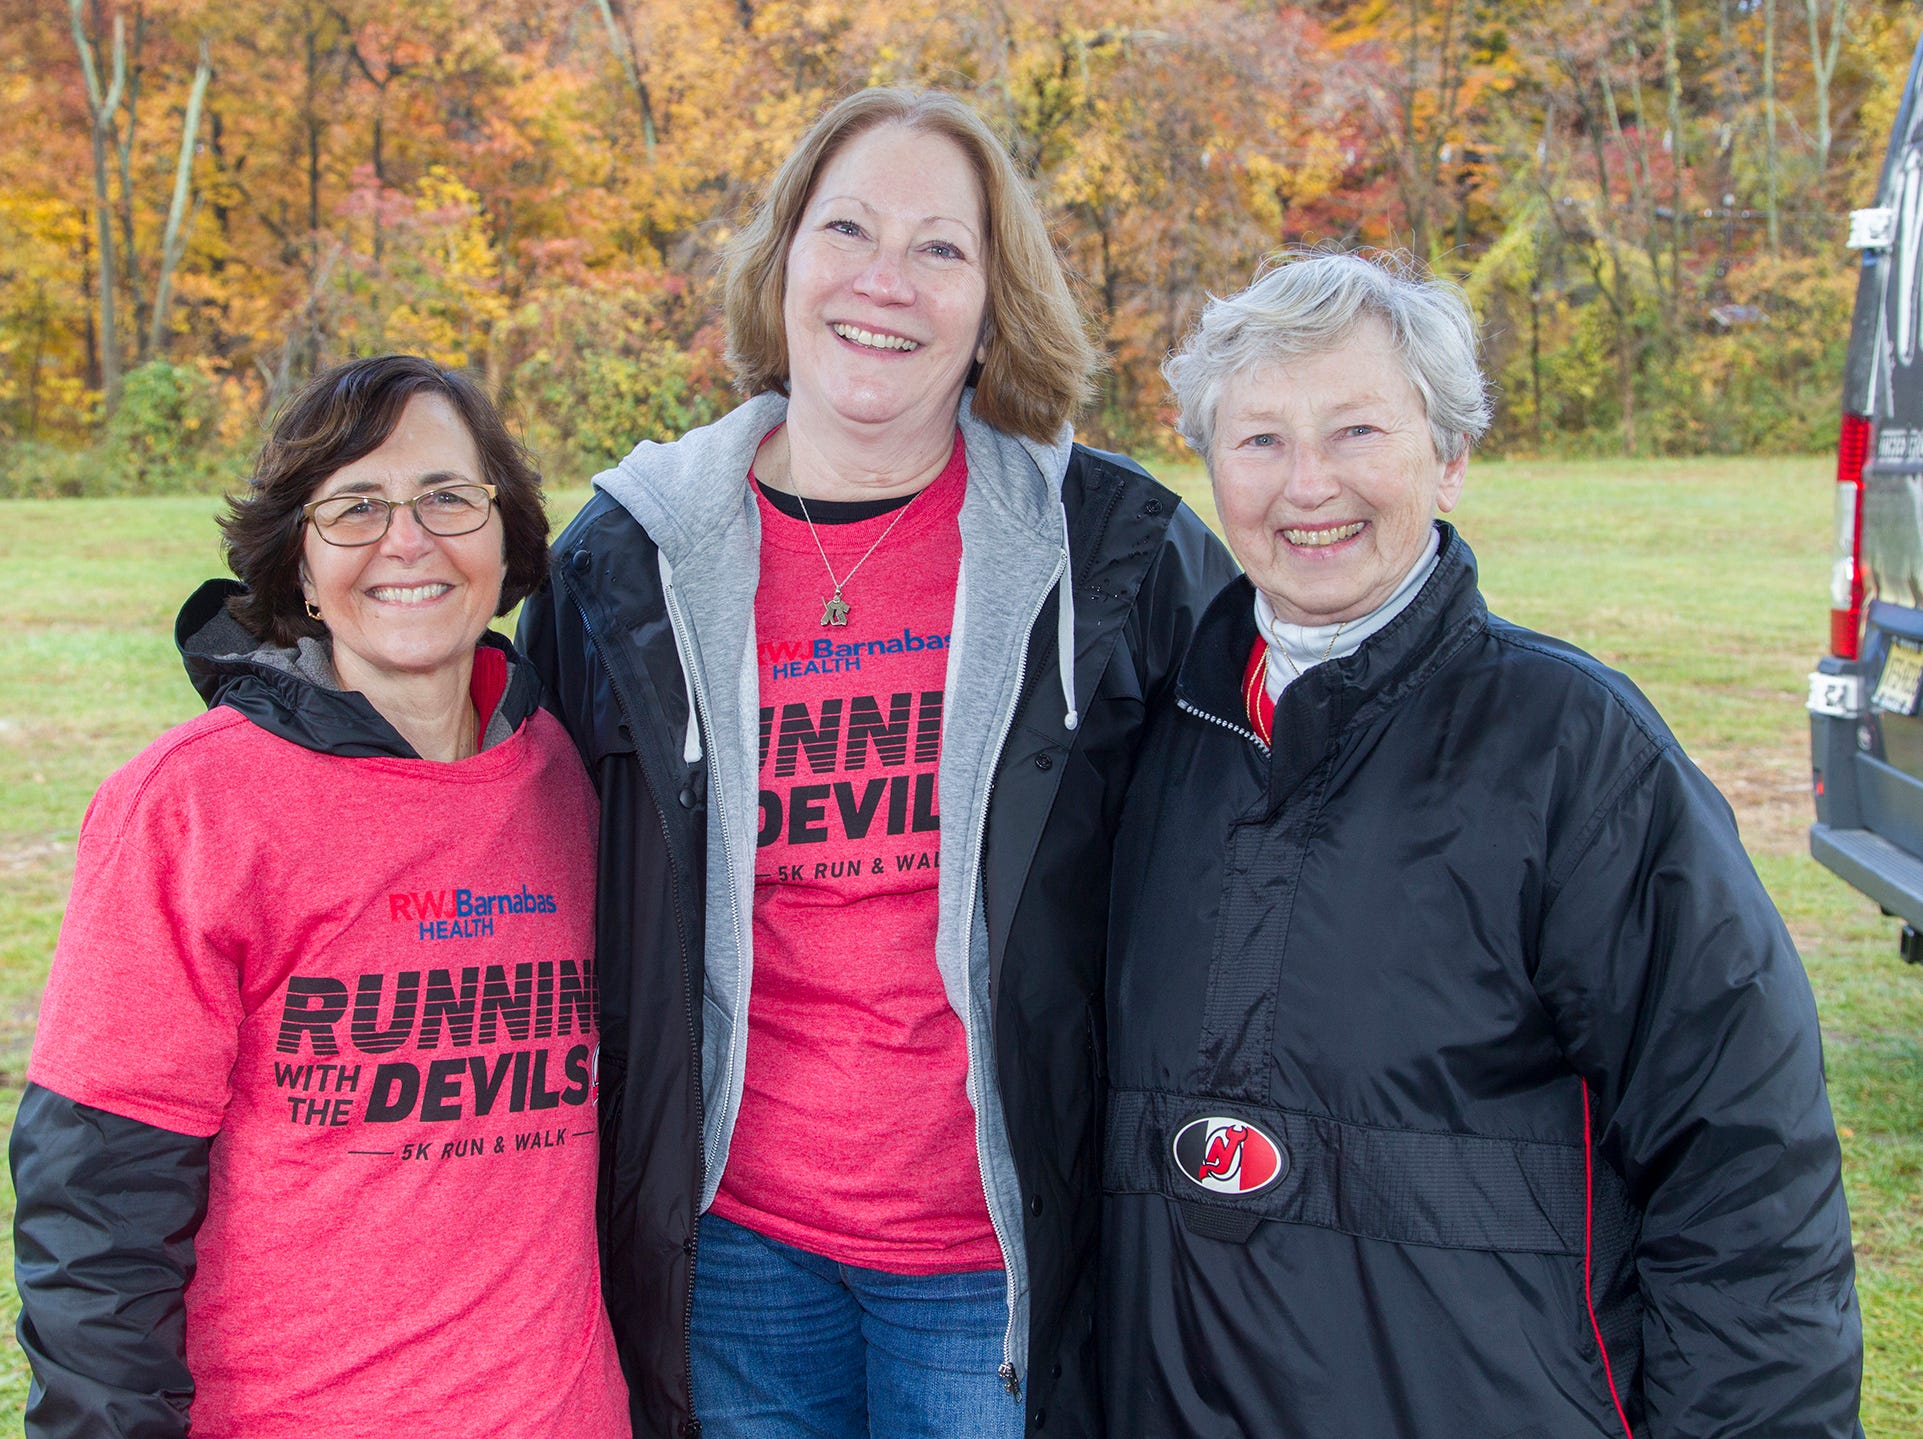 Debbie, Dee, Trudy. RWJBarnabas Health Running with the Devils 5K Run and Family Fun Walk at South Mountain Recreation in West Orange. 10/03/2018